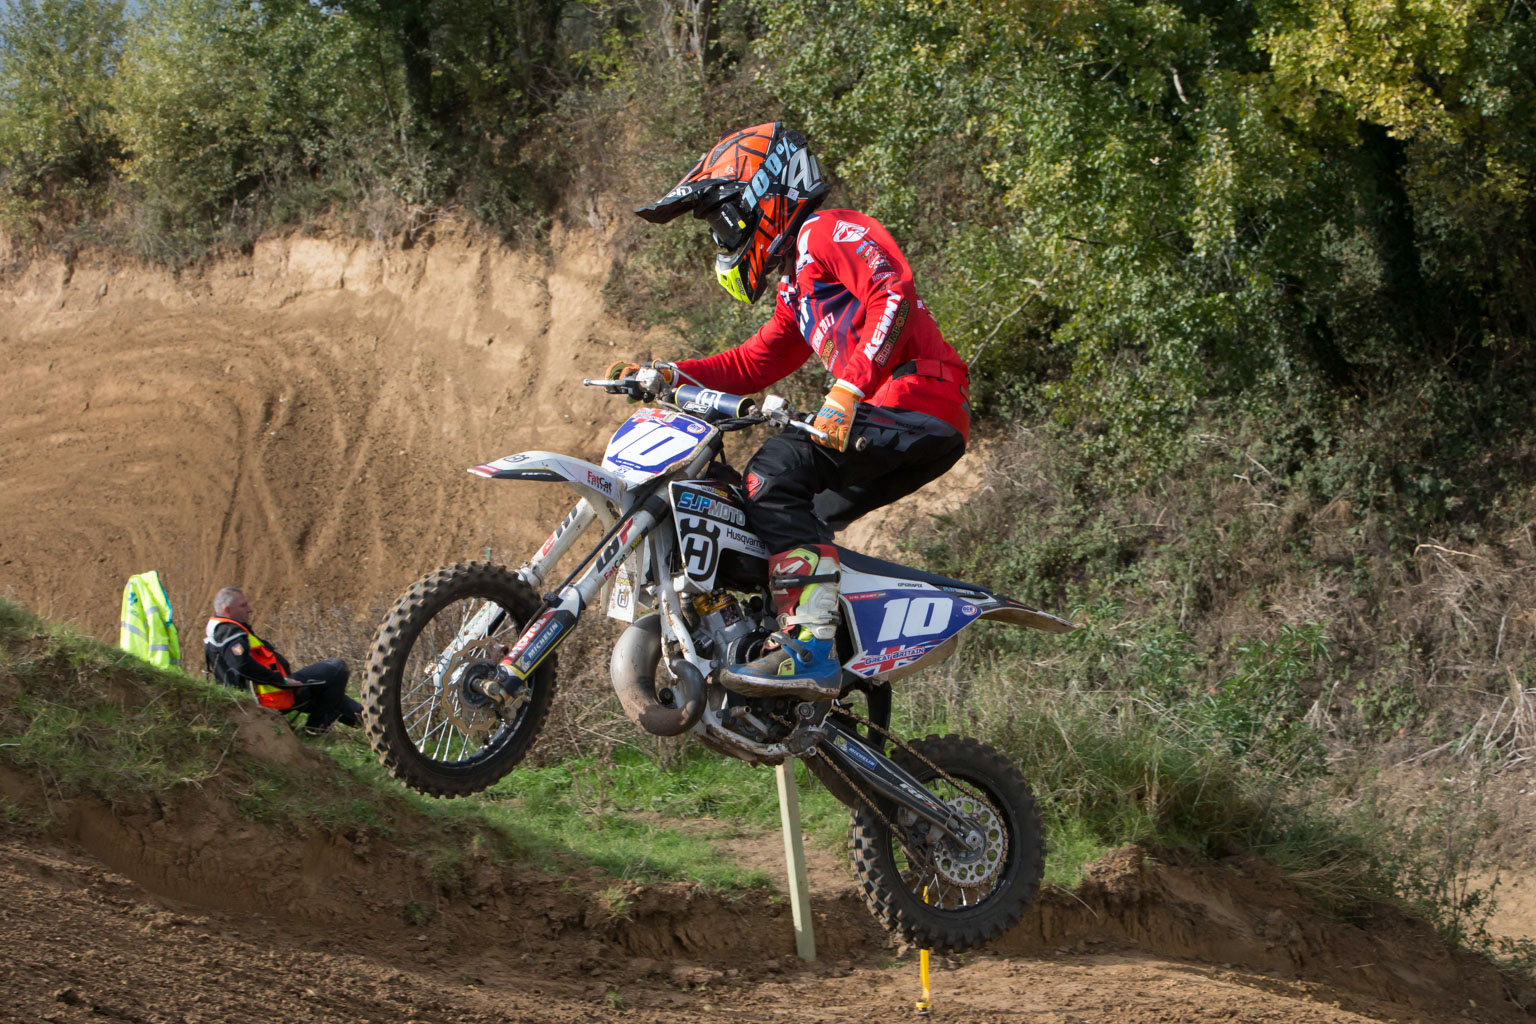 Wal Beaney (Husqvarna, GB) was styling!